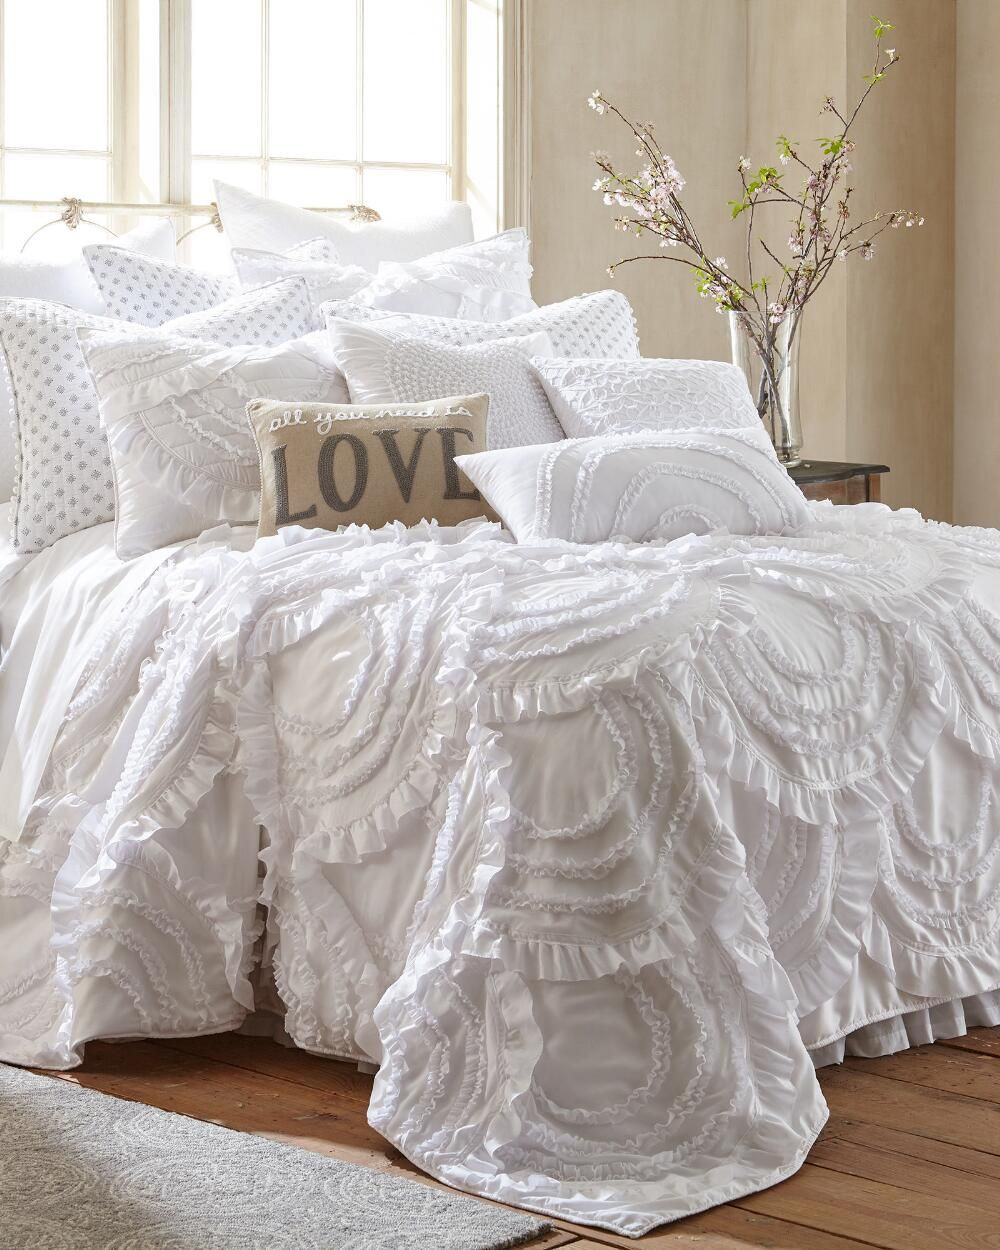 Lyla Ruffled Luxury Euro Sham Smu Luxurious Bedrooms